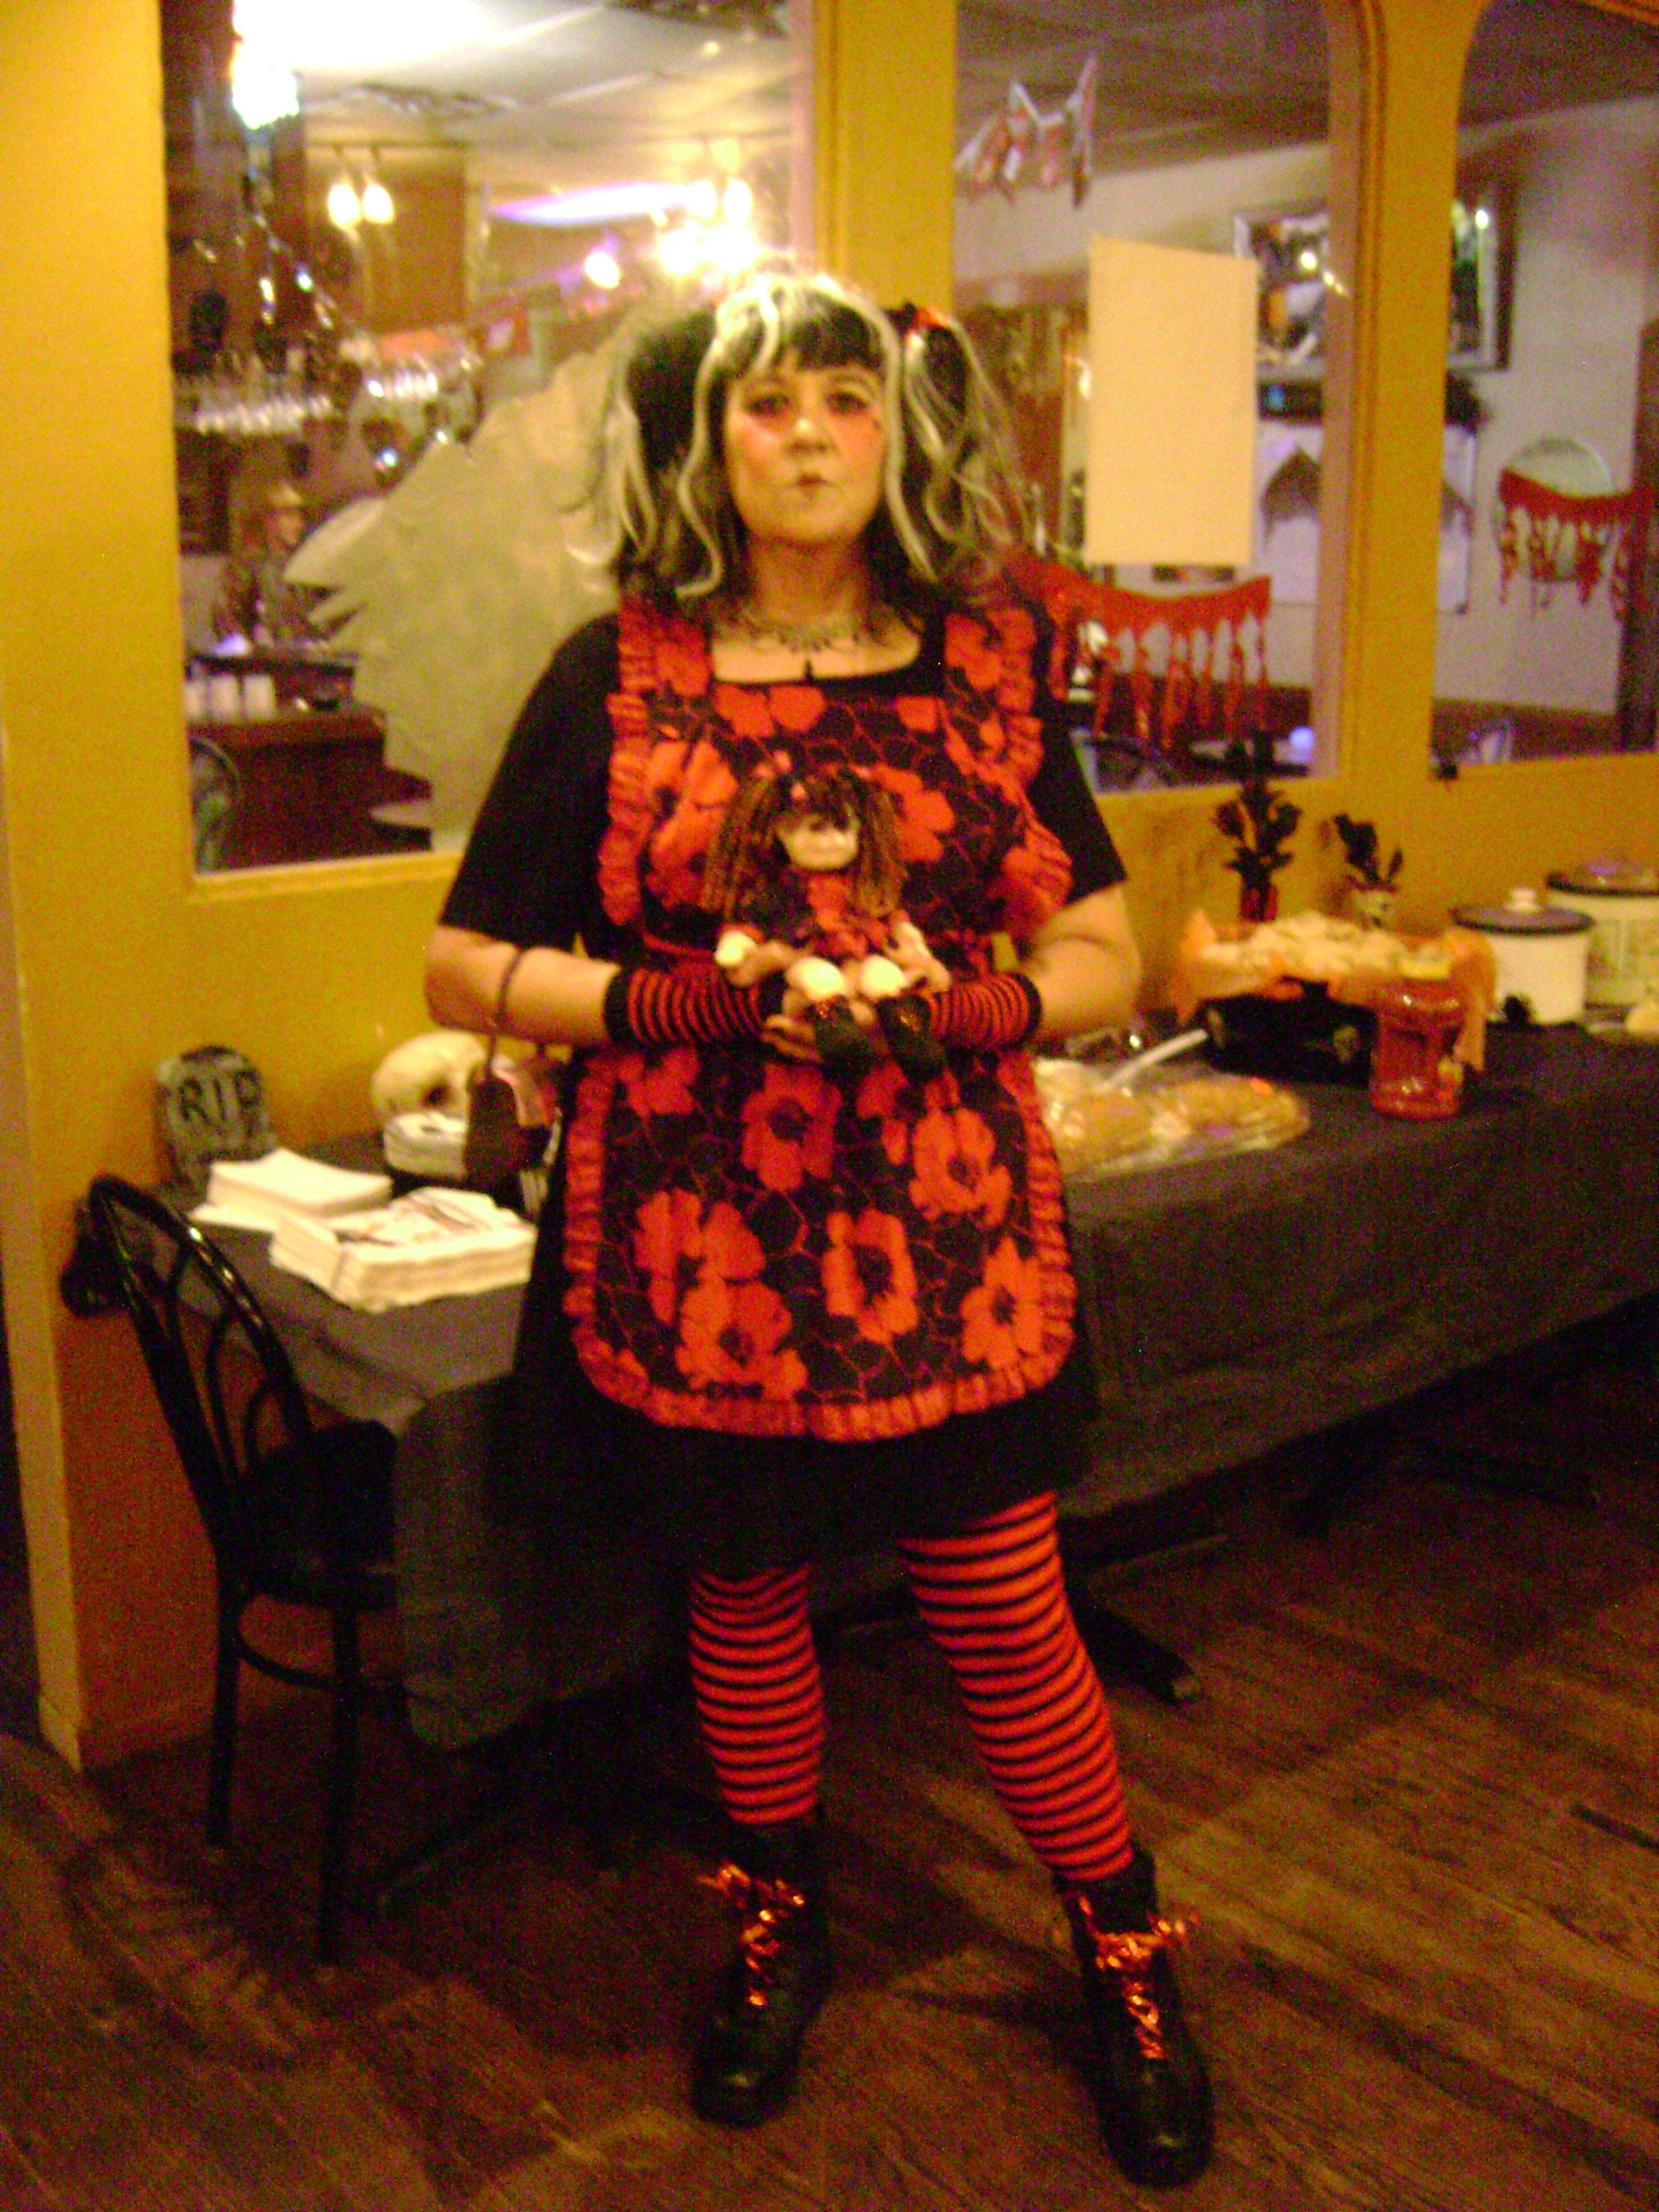 Rag-Deadly Ann....2010 Halloween costume I made (along with the little mini-me doll I'm holding).